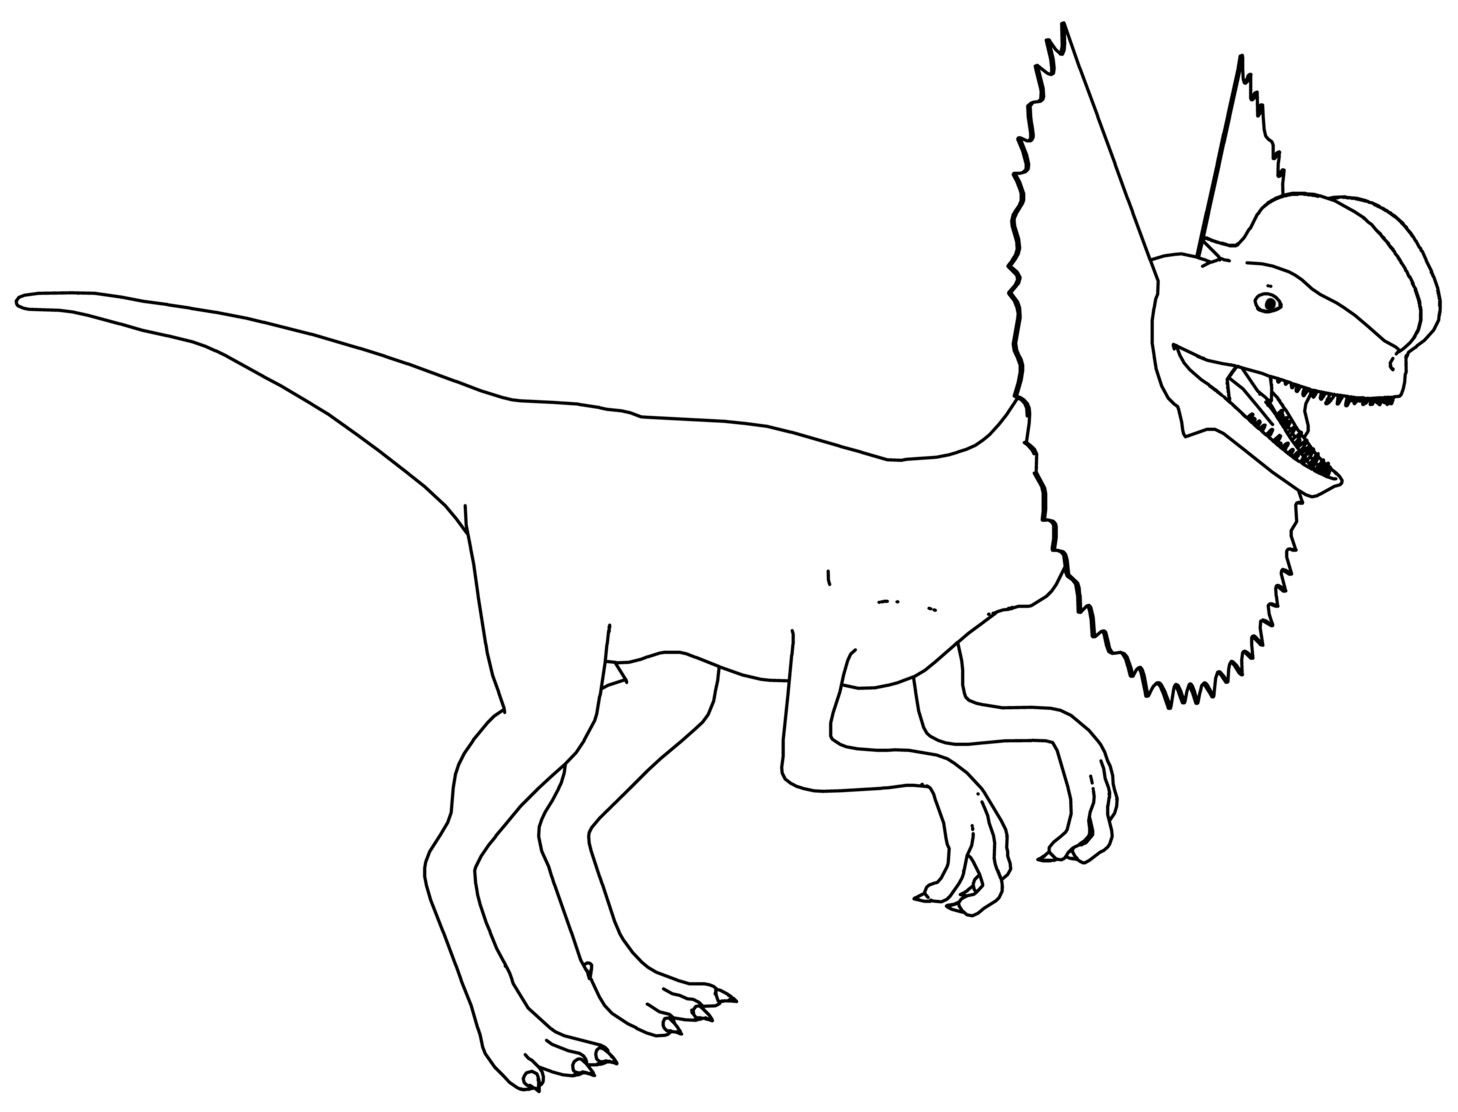 ceratosaurus coloring pages robin39s great coloring pages ceratosaurus pages ceratosaurus coloring